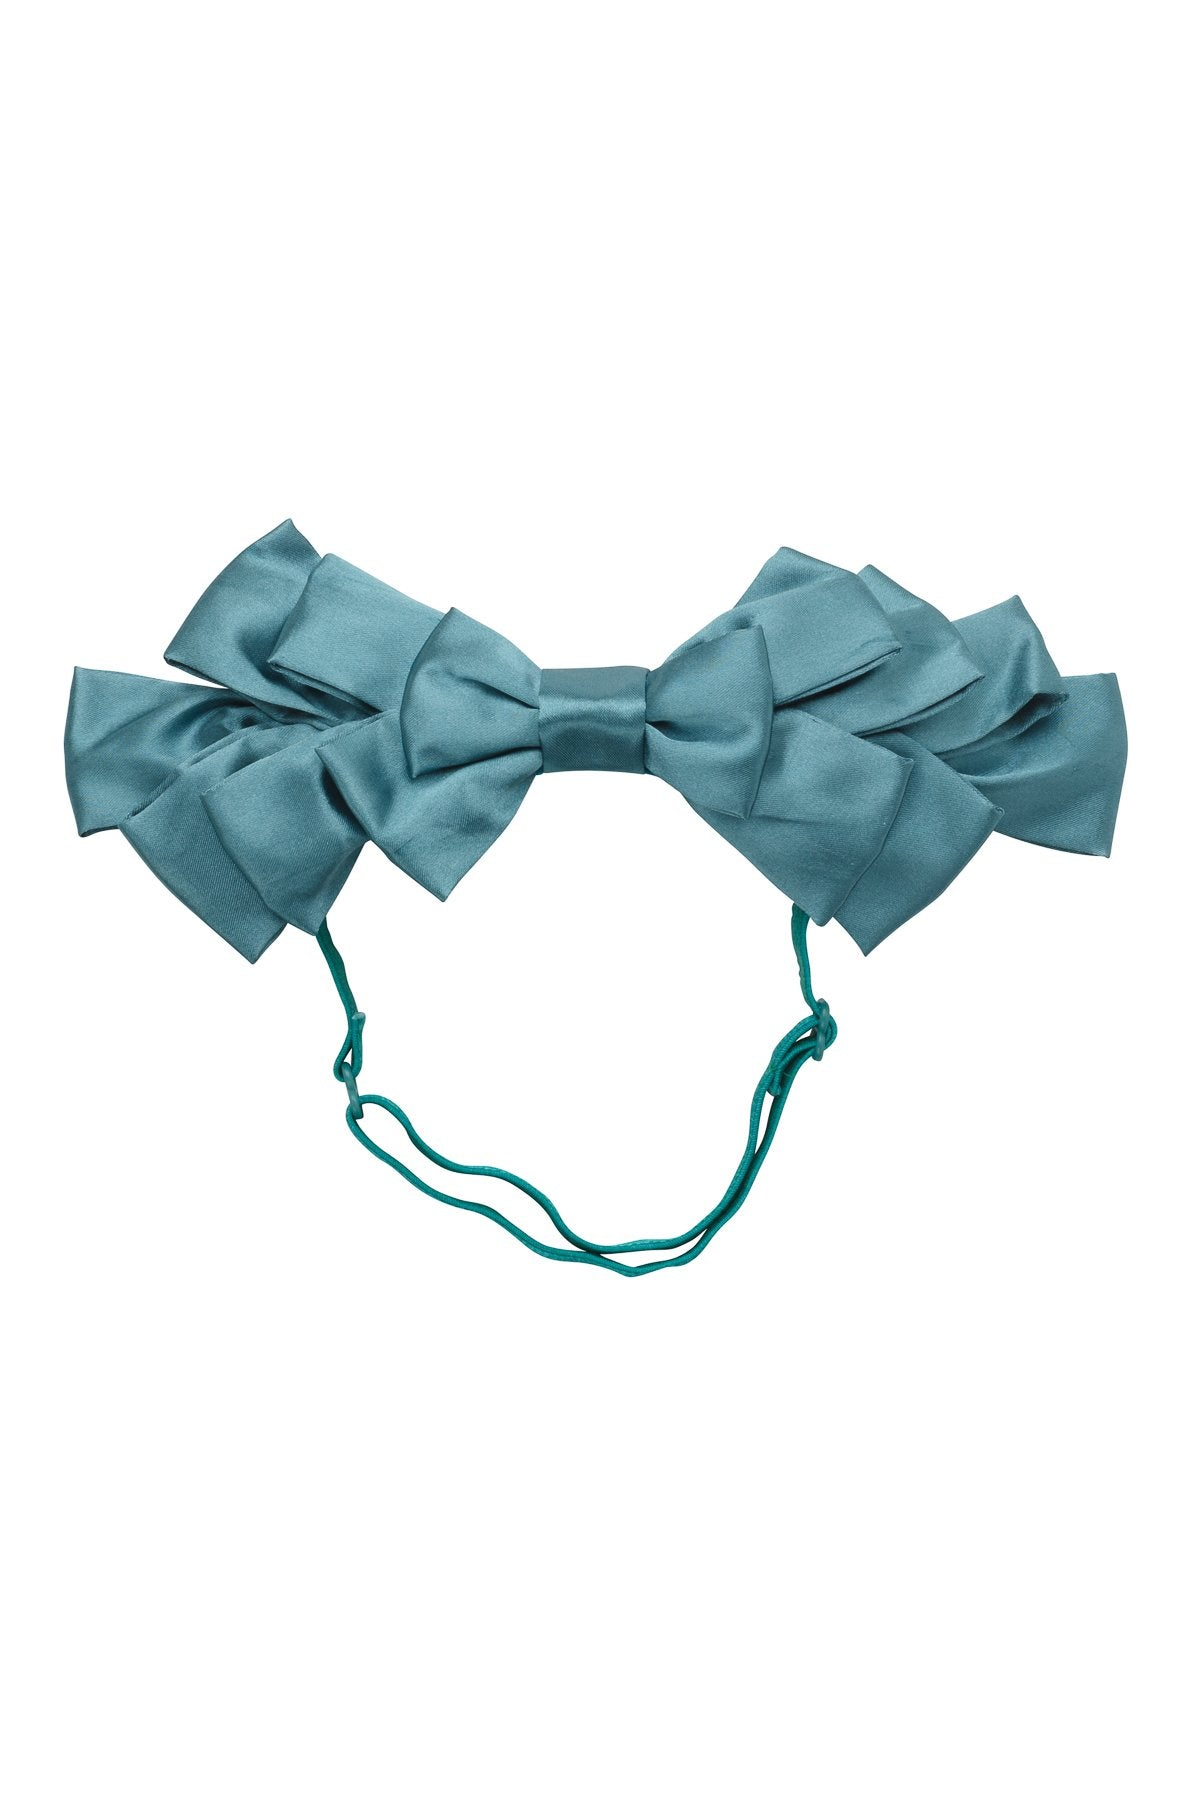 Pleated Ribbon Wrap - Teal - PROJECT 6, modest fashion